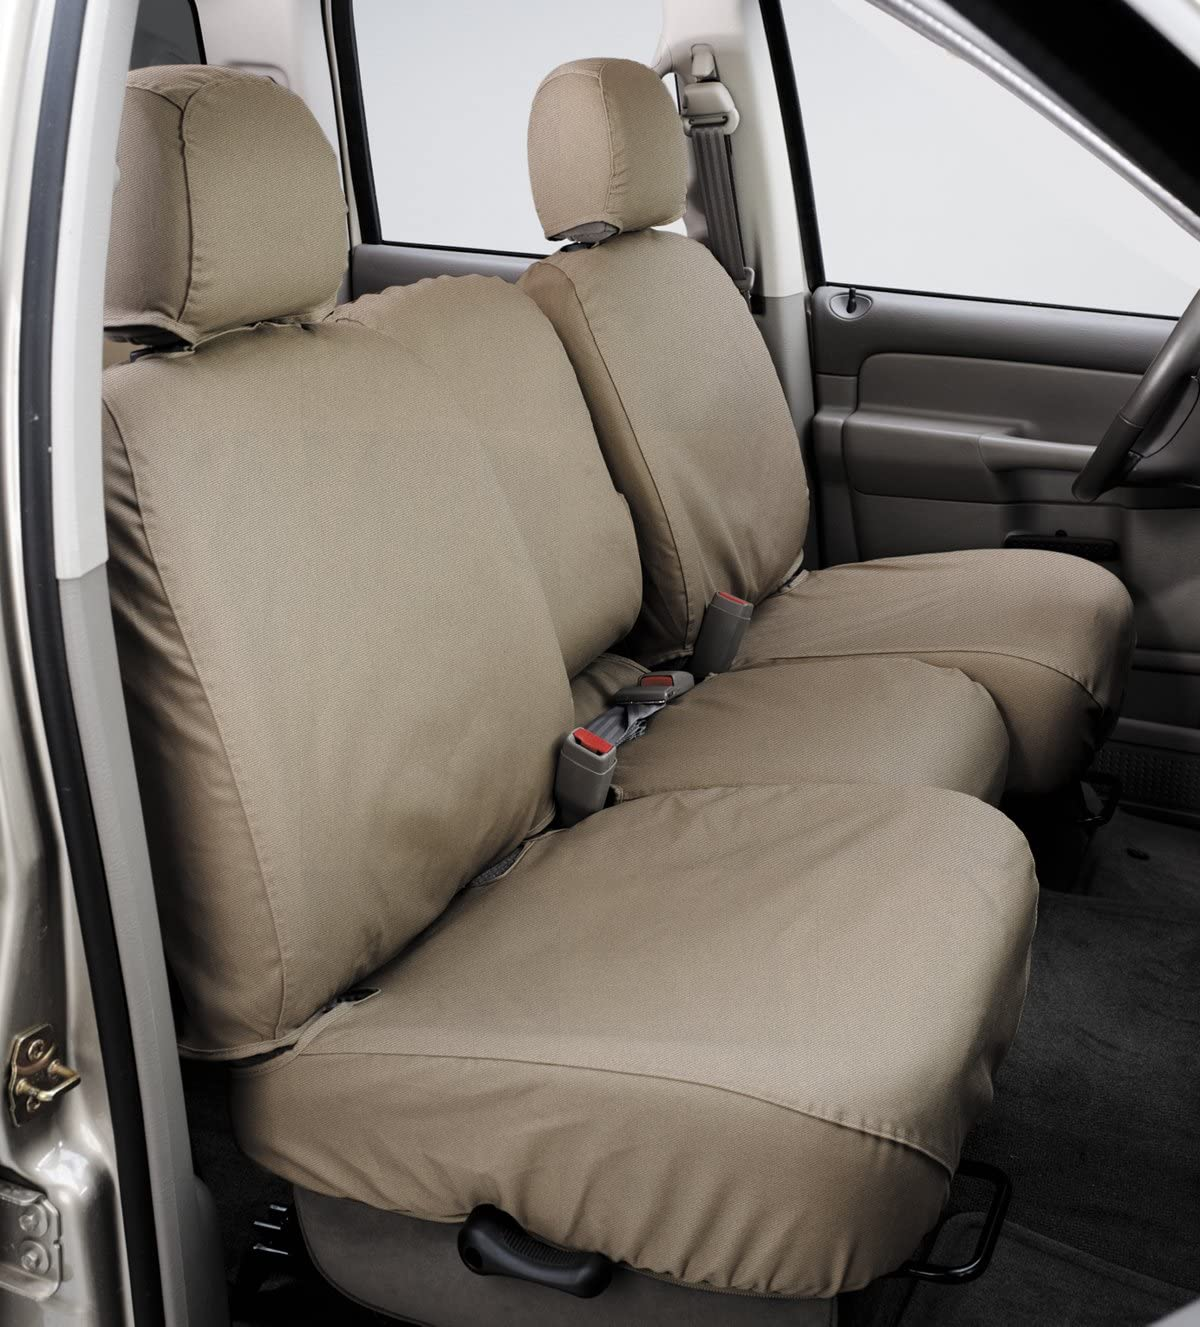 Covercraft SeatSaver Front Row Custom Fit Seat Cover for Select Nissan Frontier/Nissan Xterra Models - Polycotton (Taupe)